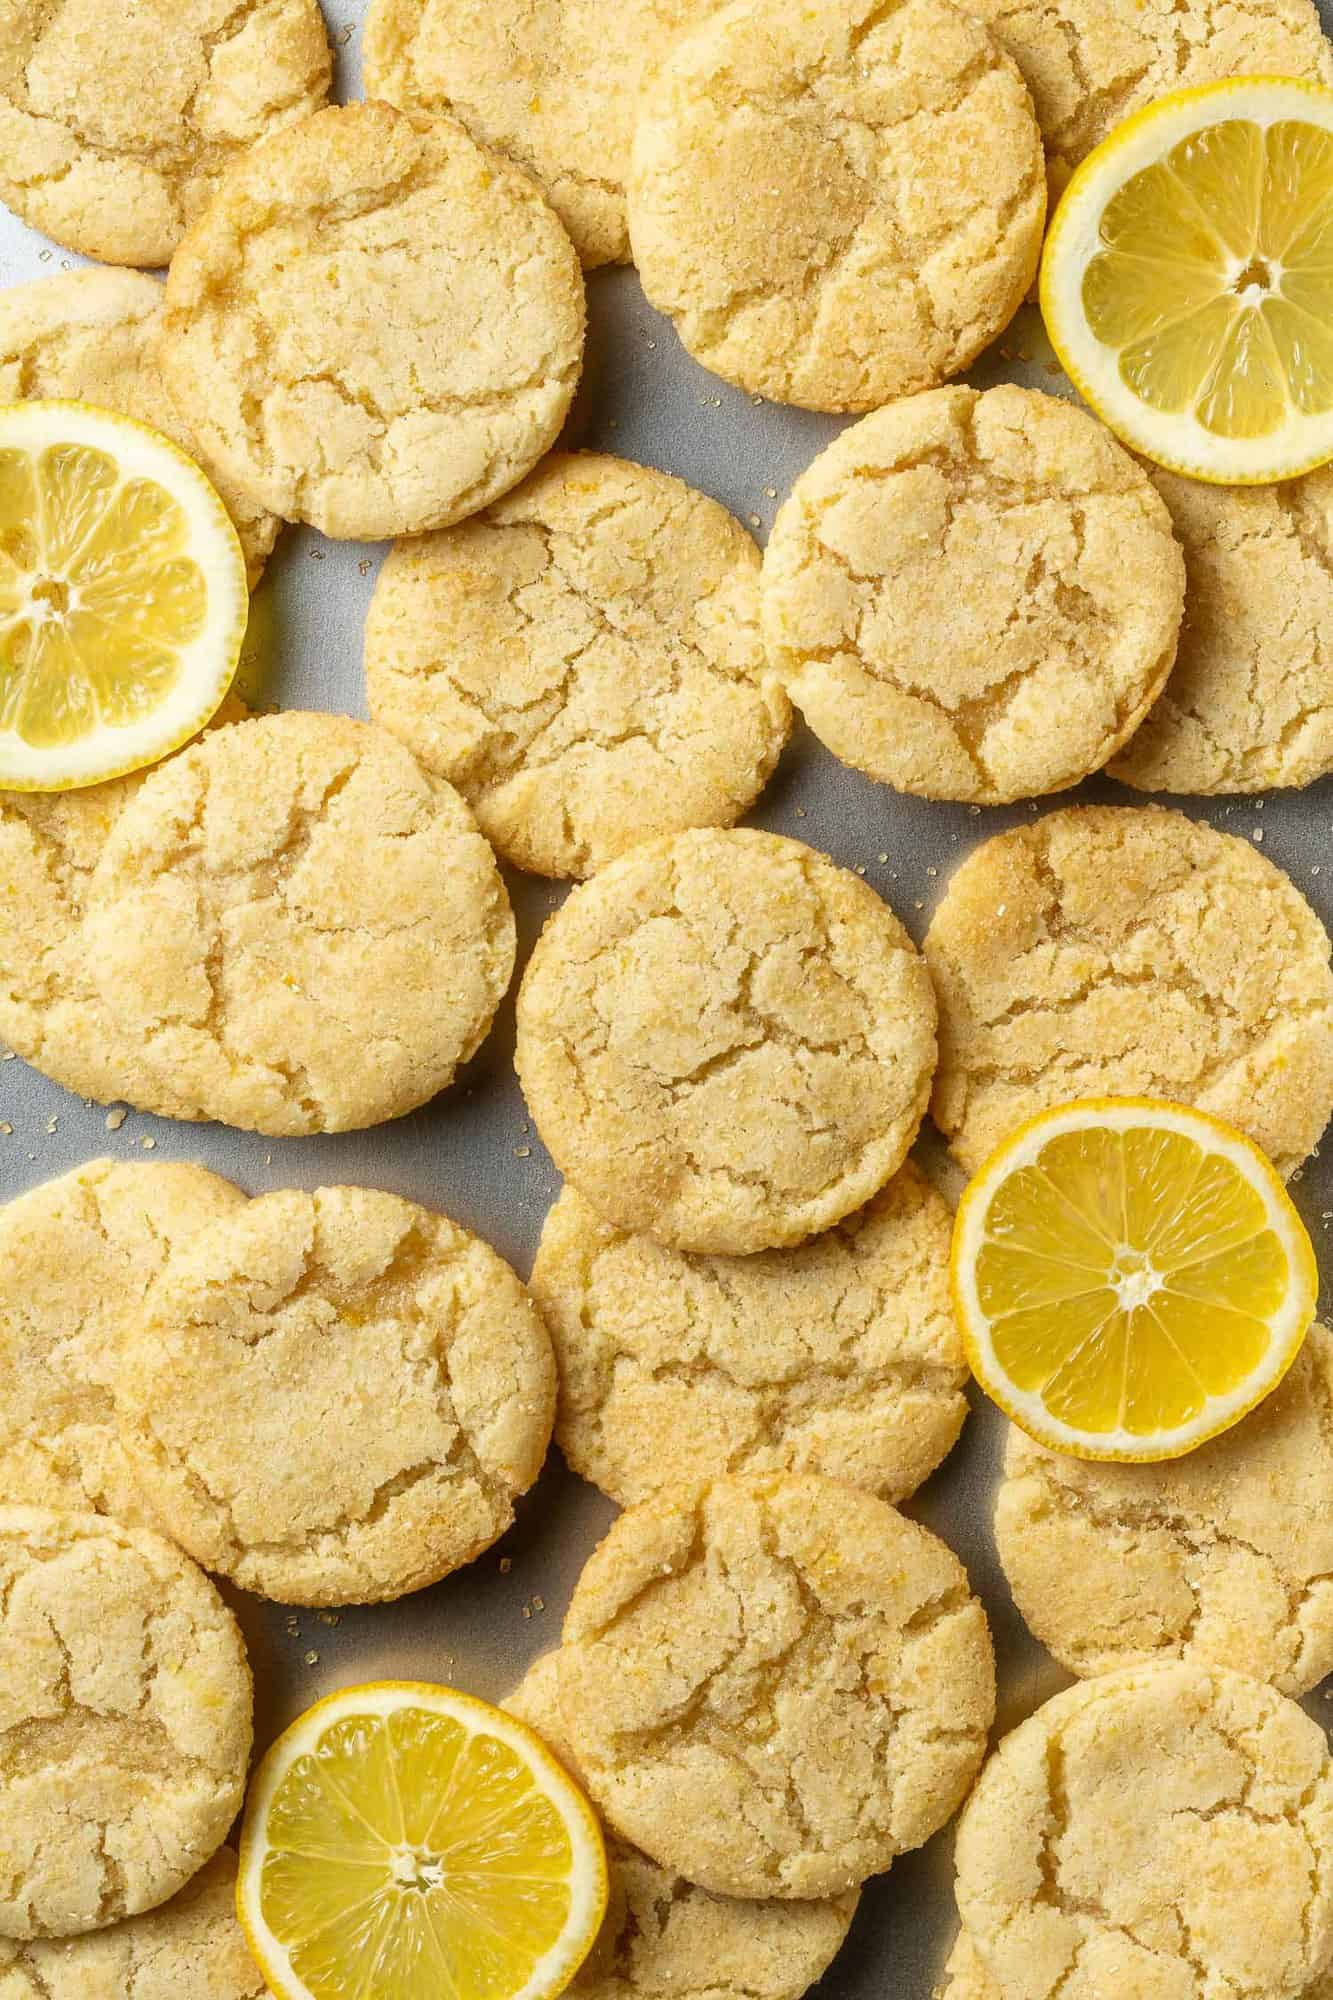 Overhead view of cookies and lemon slices.